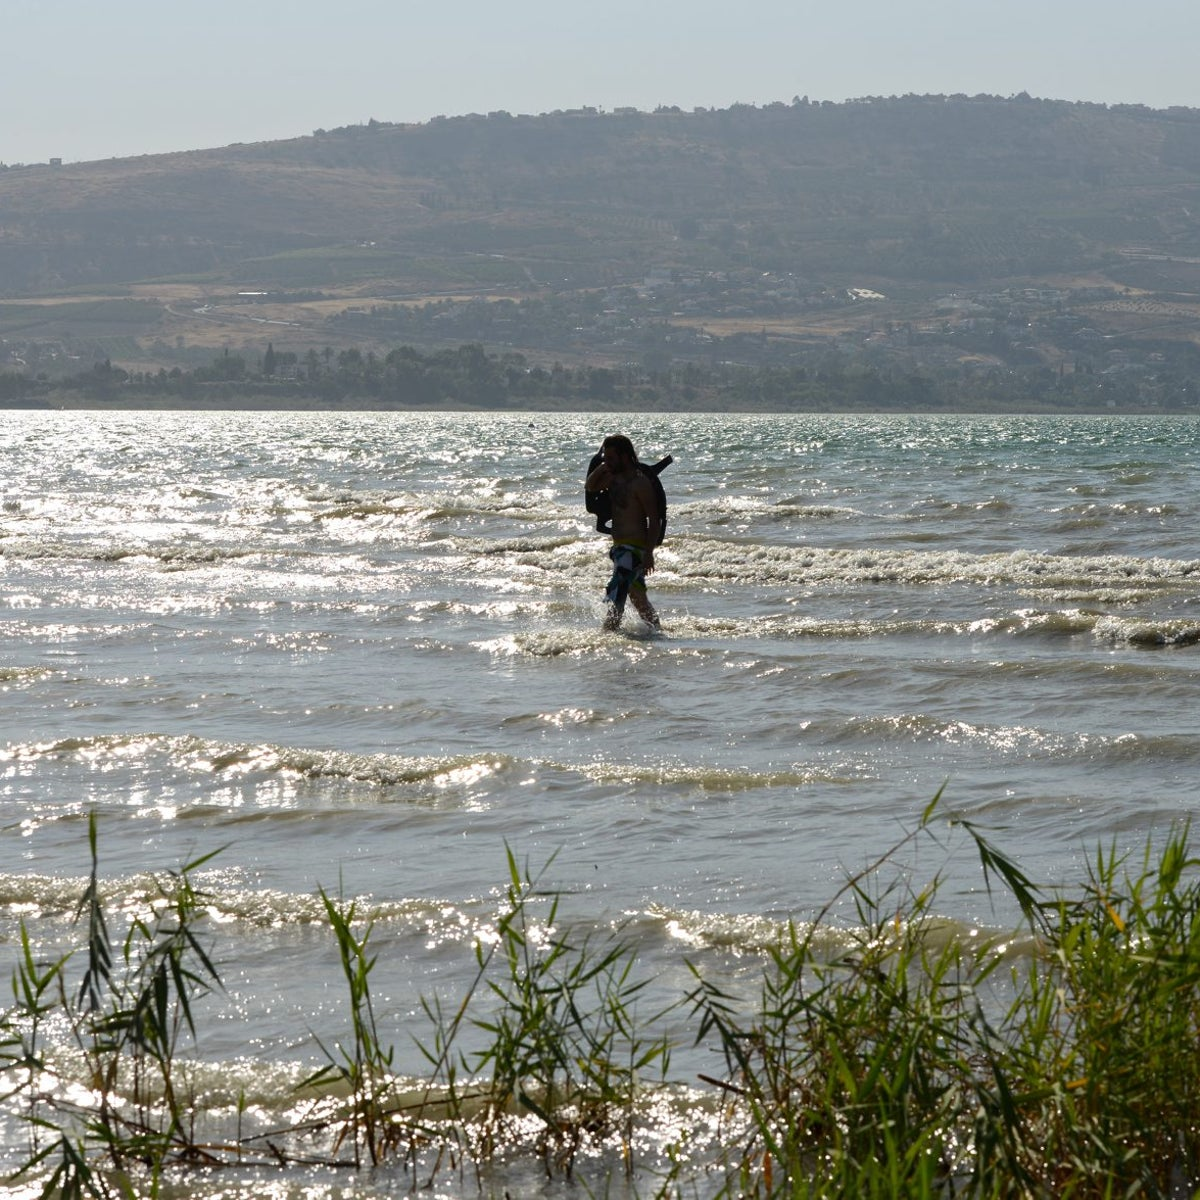 The water level in the Sea of Galilee is sinking fast.